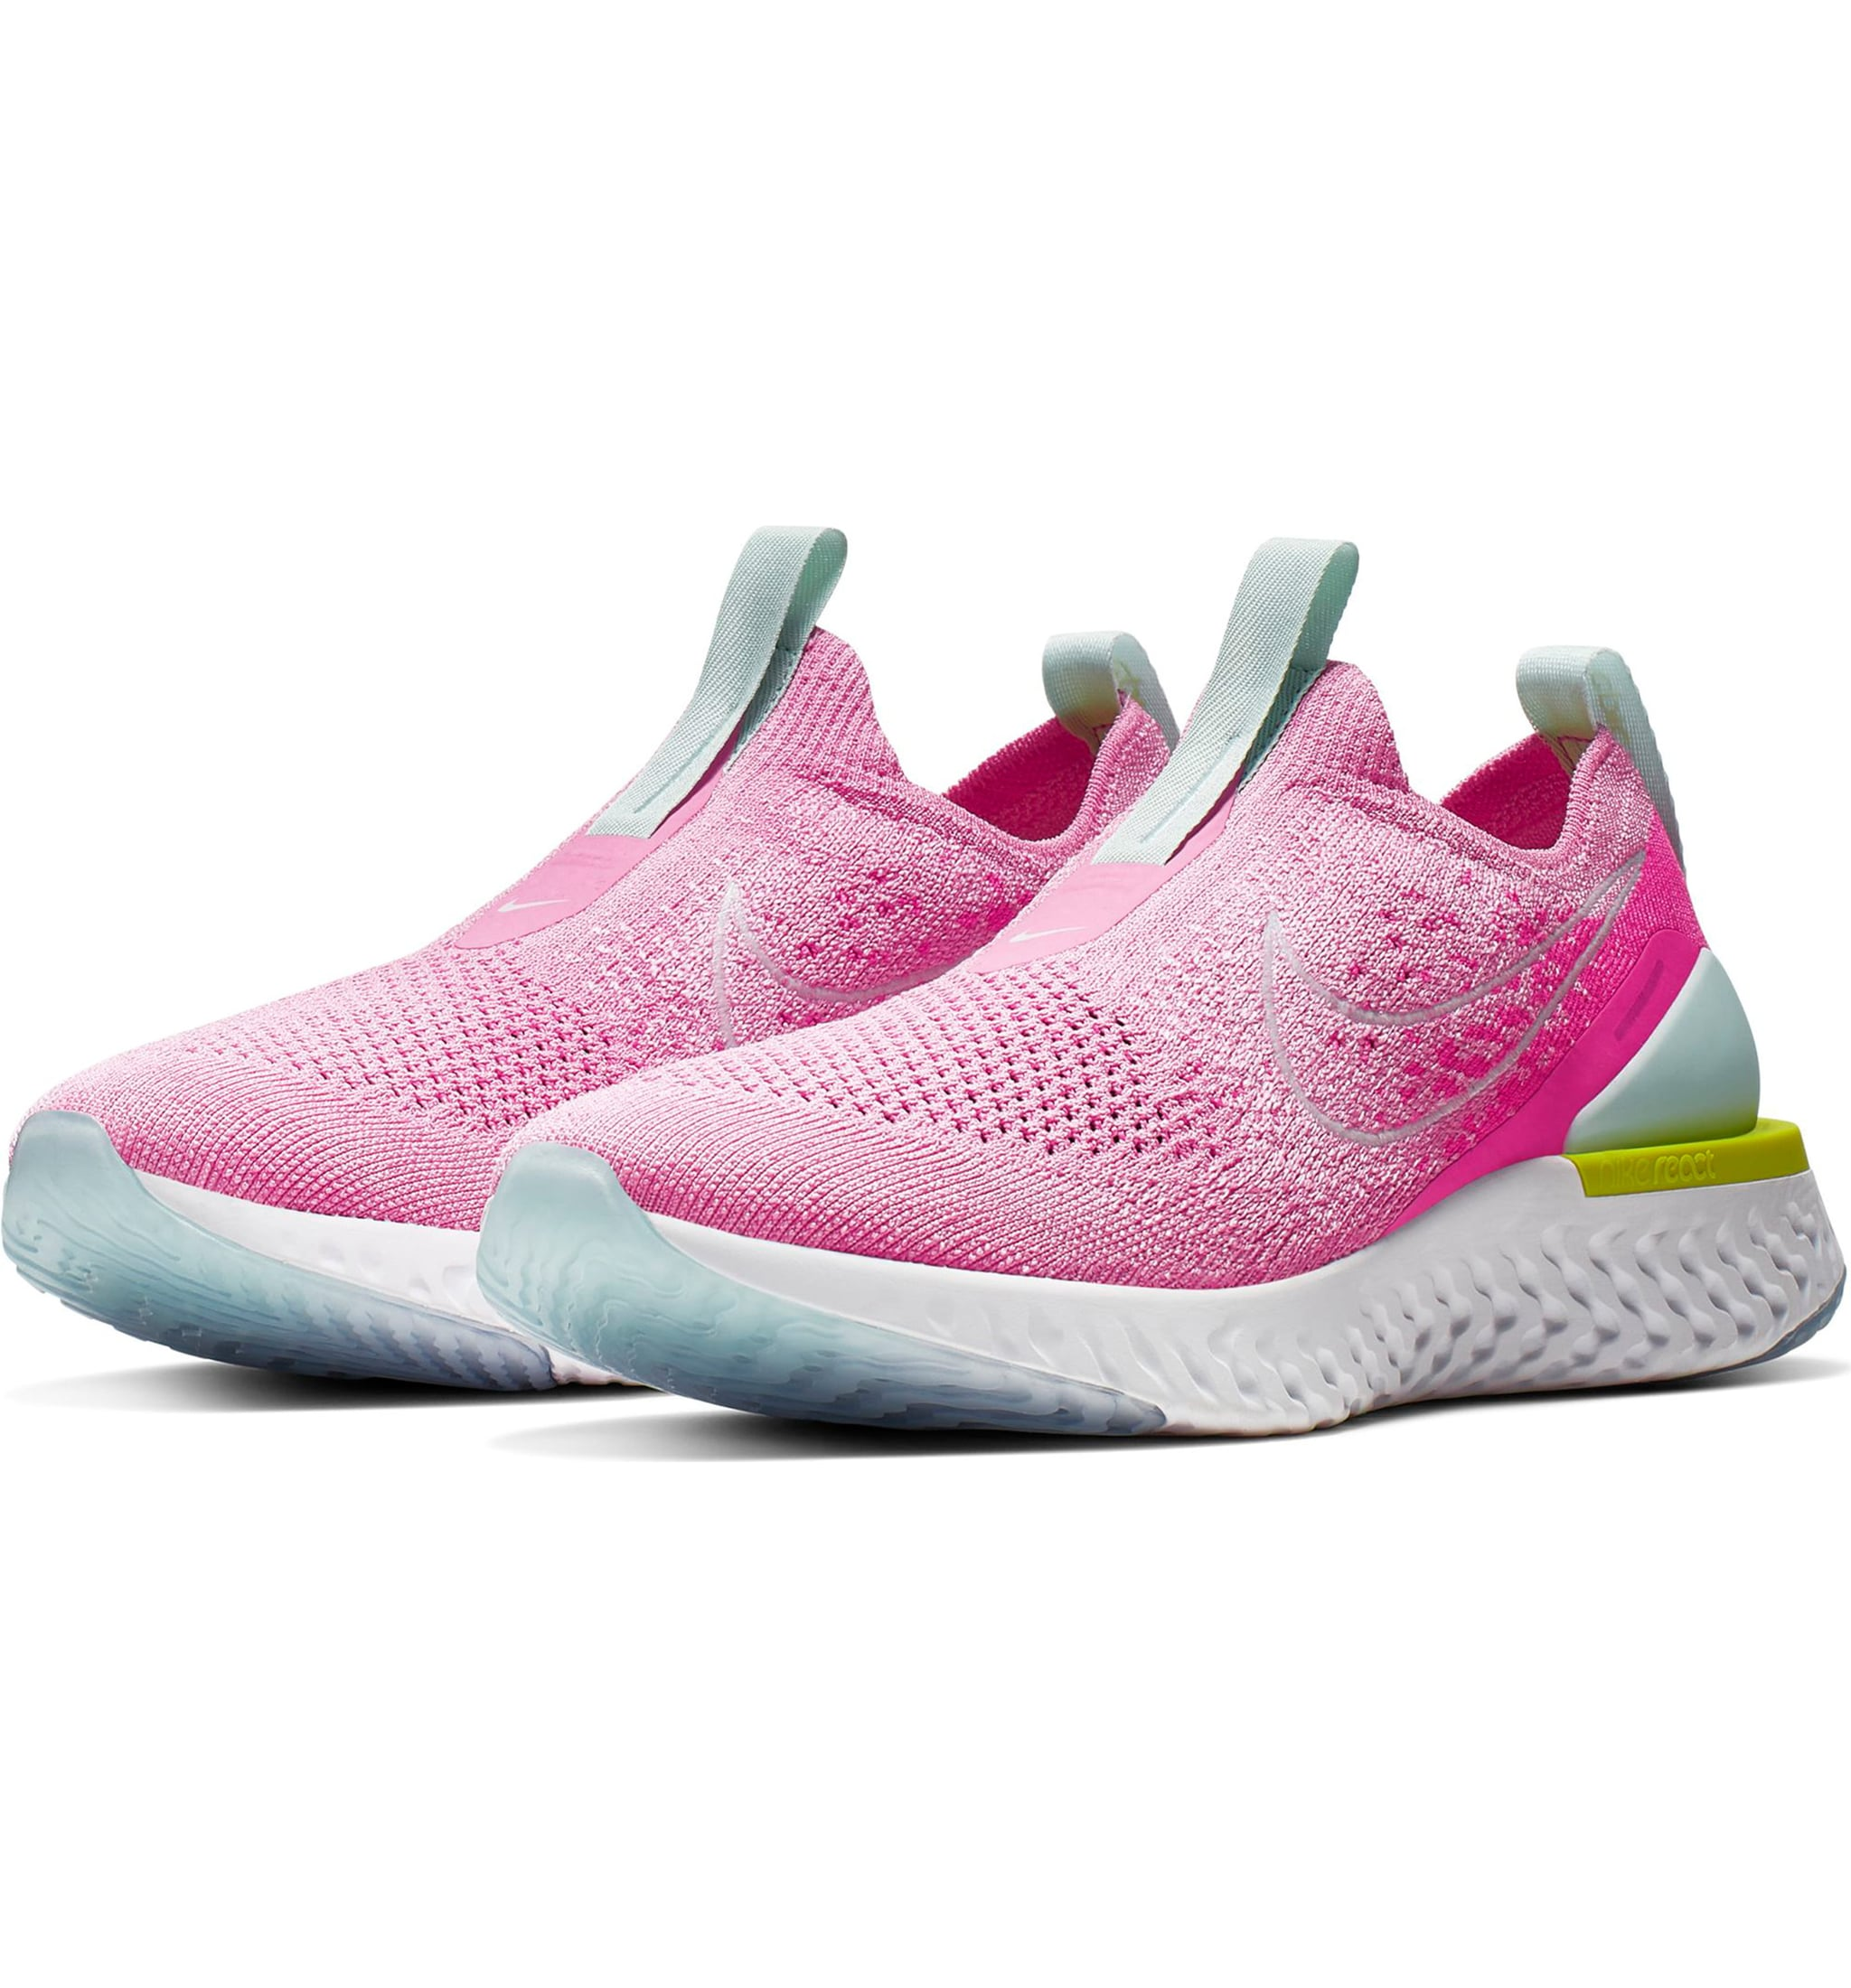 a91a32b6858 Nike Epic Phantom React Running Shoe